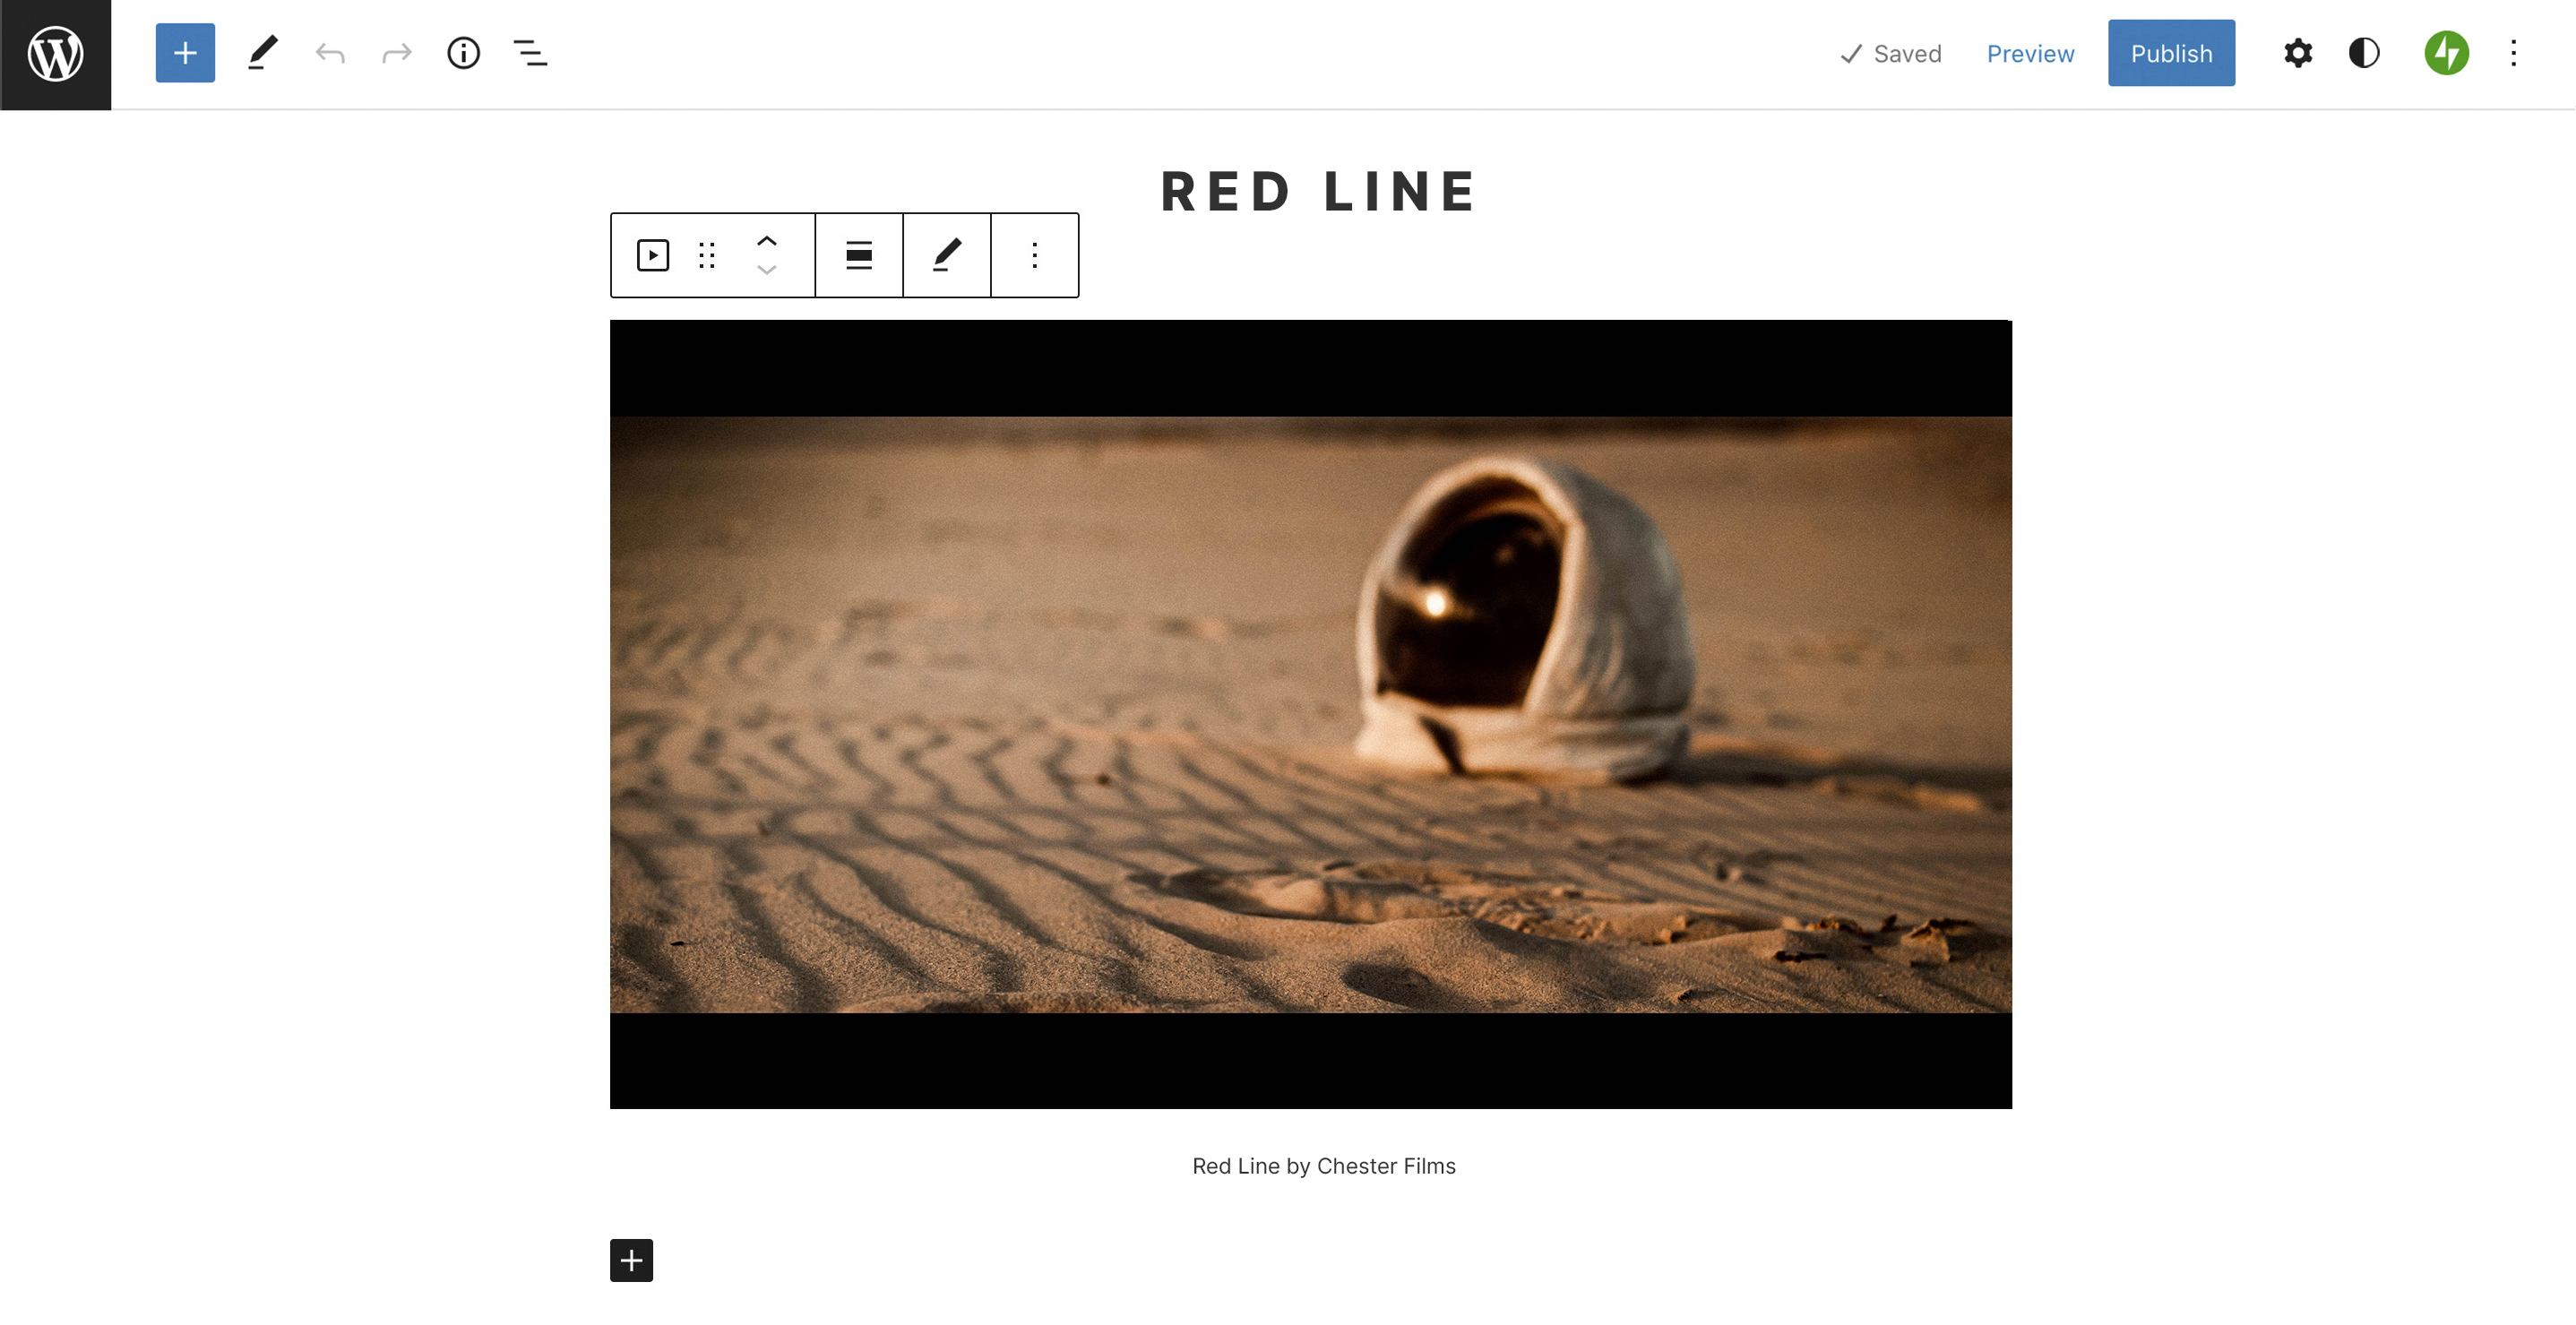 Screenshot of the WordPress editor with a video block included on the page. The video preview is of a space helmet on a different planet.